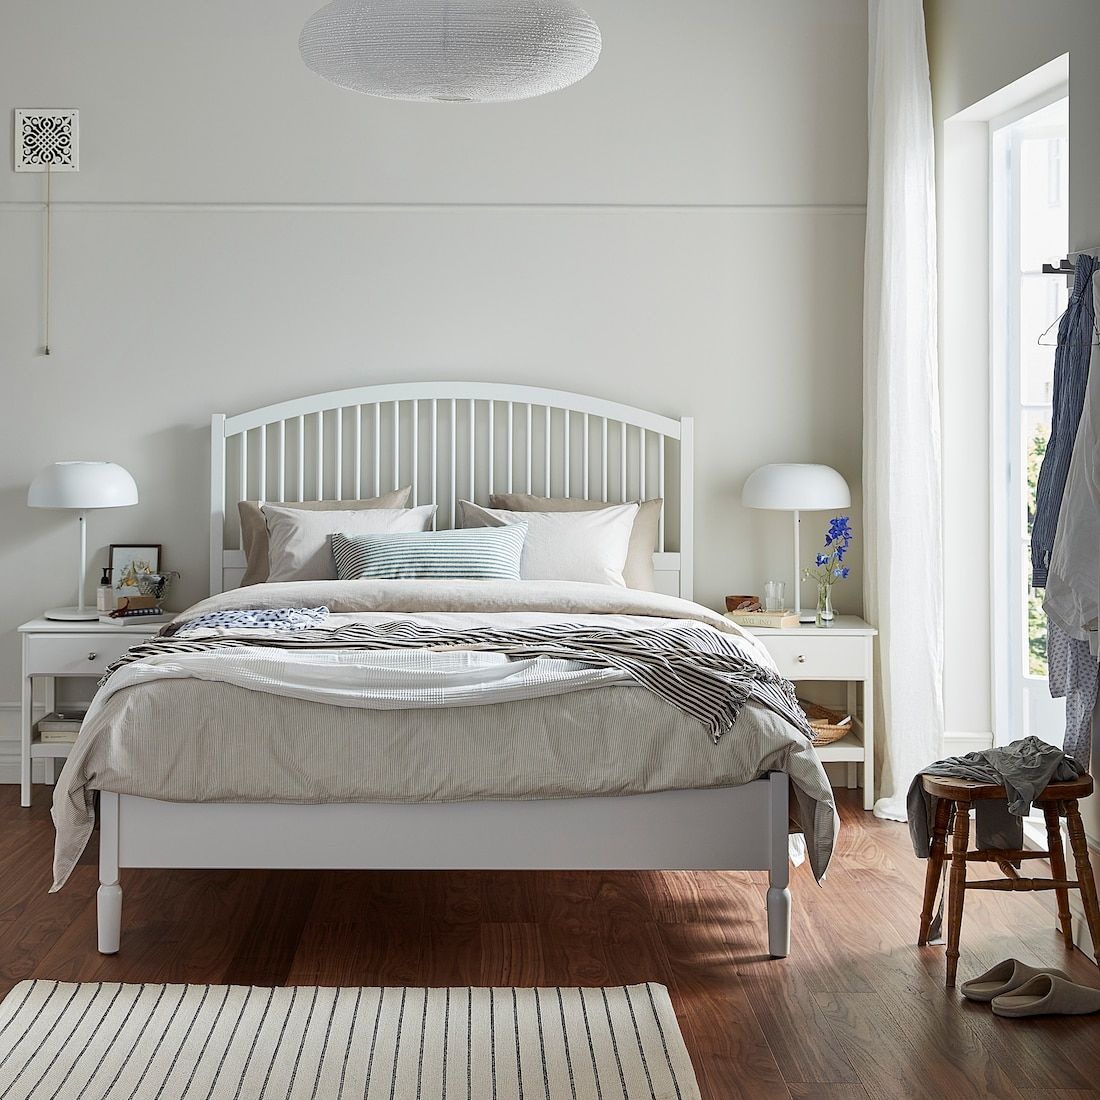 IKEA TYSSEDAL White, Luröy Bed frame in 2020 Bed frame